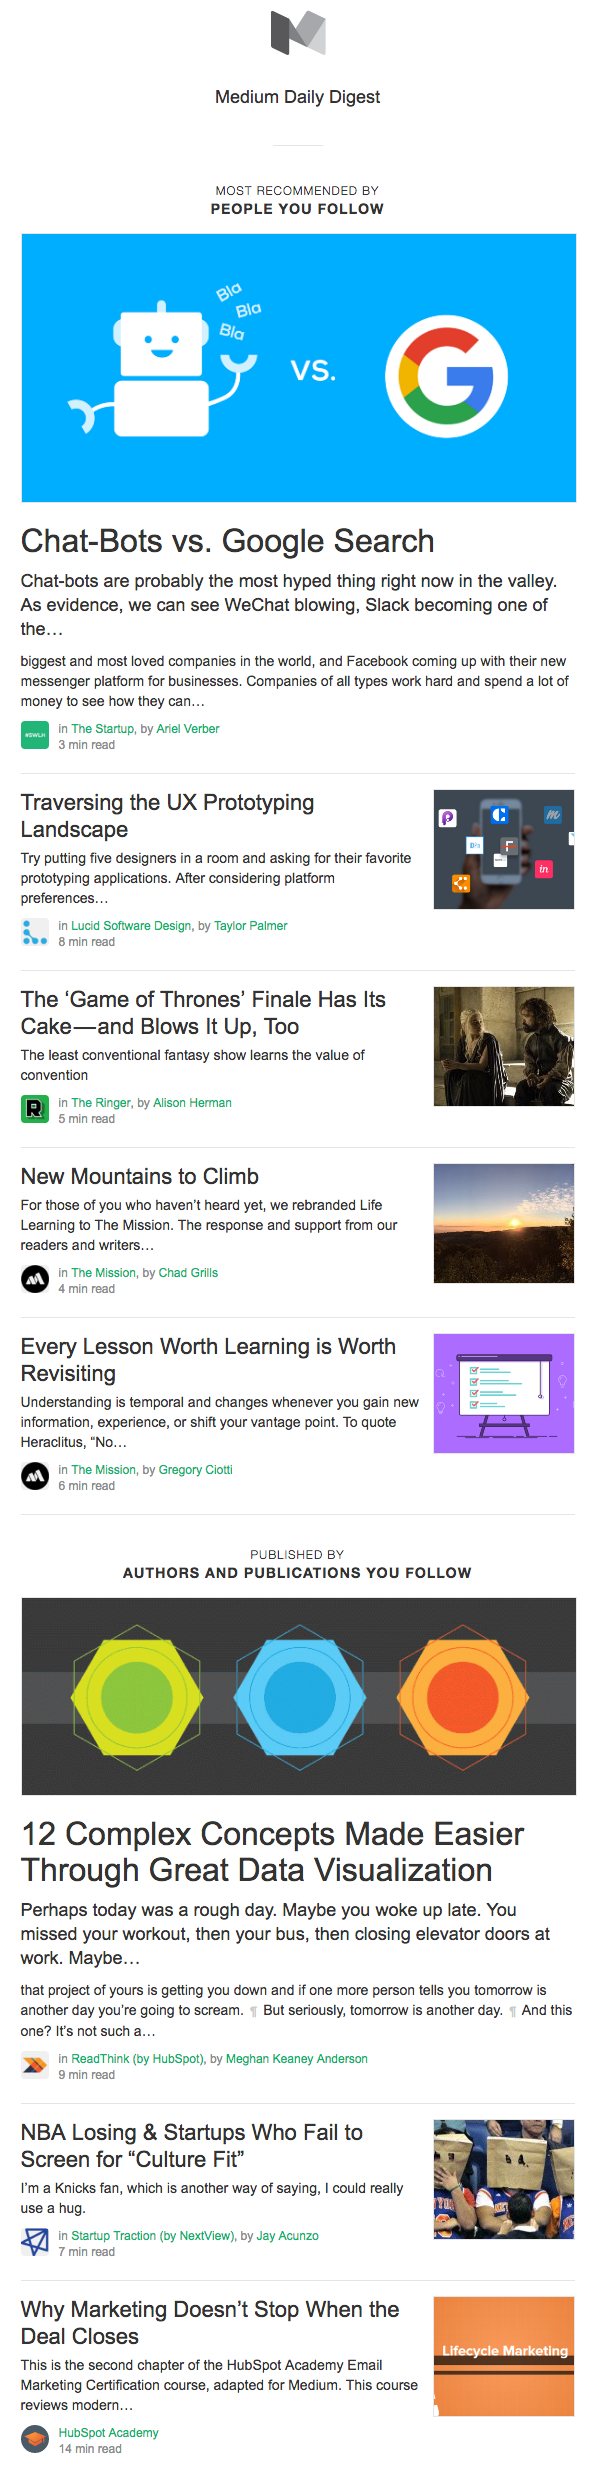 medium-newsletter-example.png